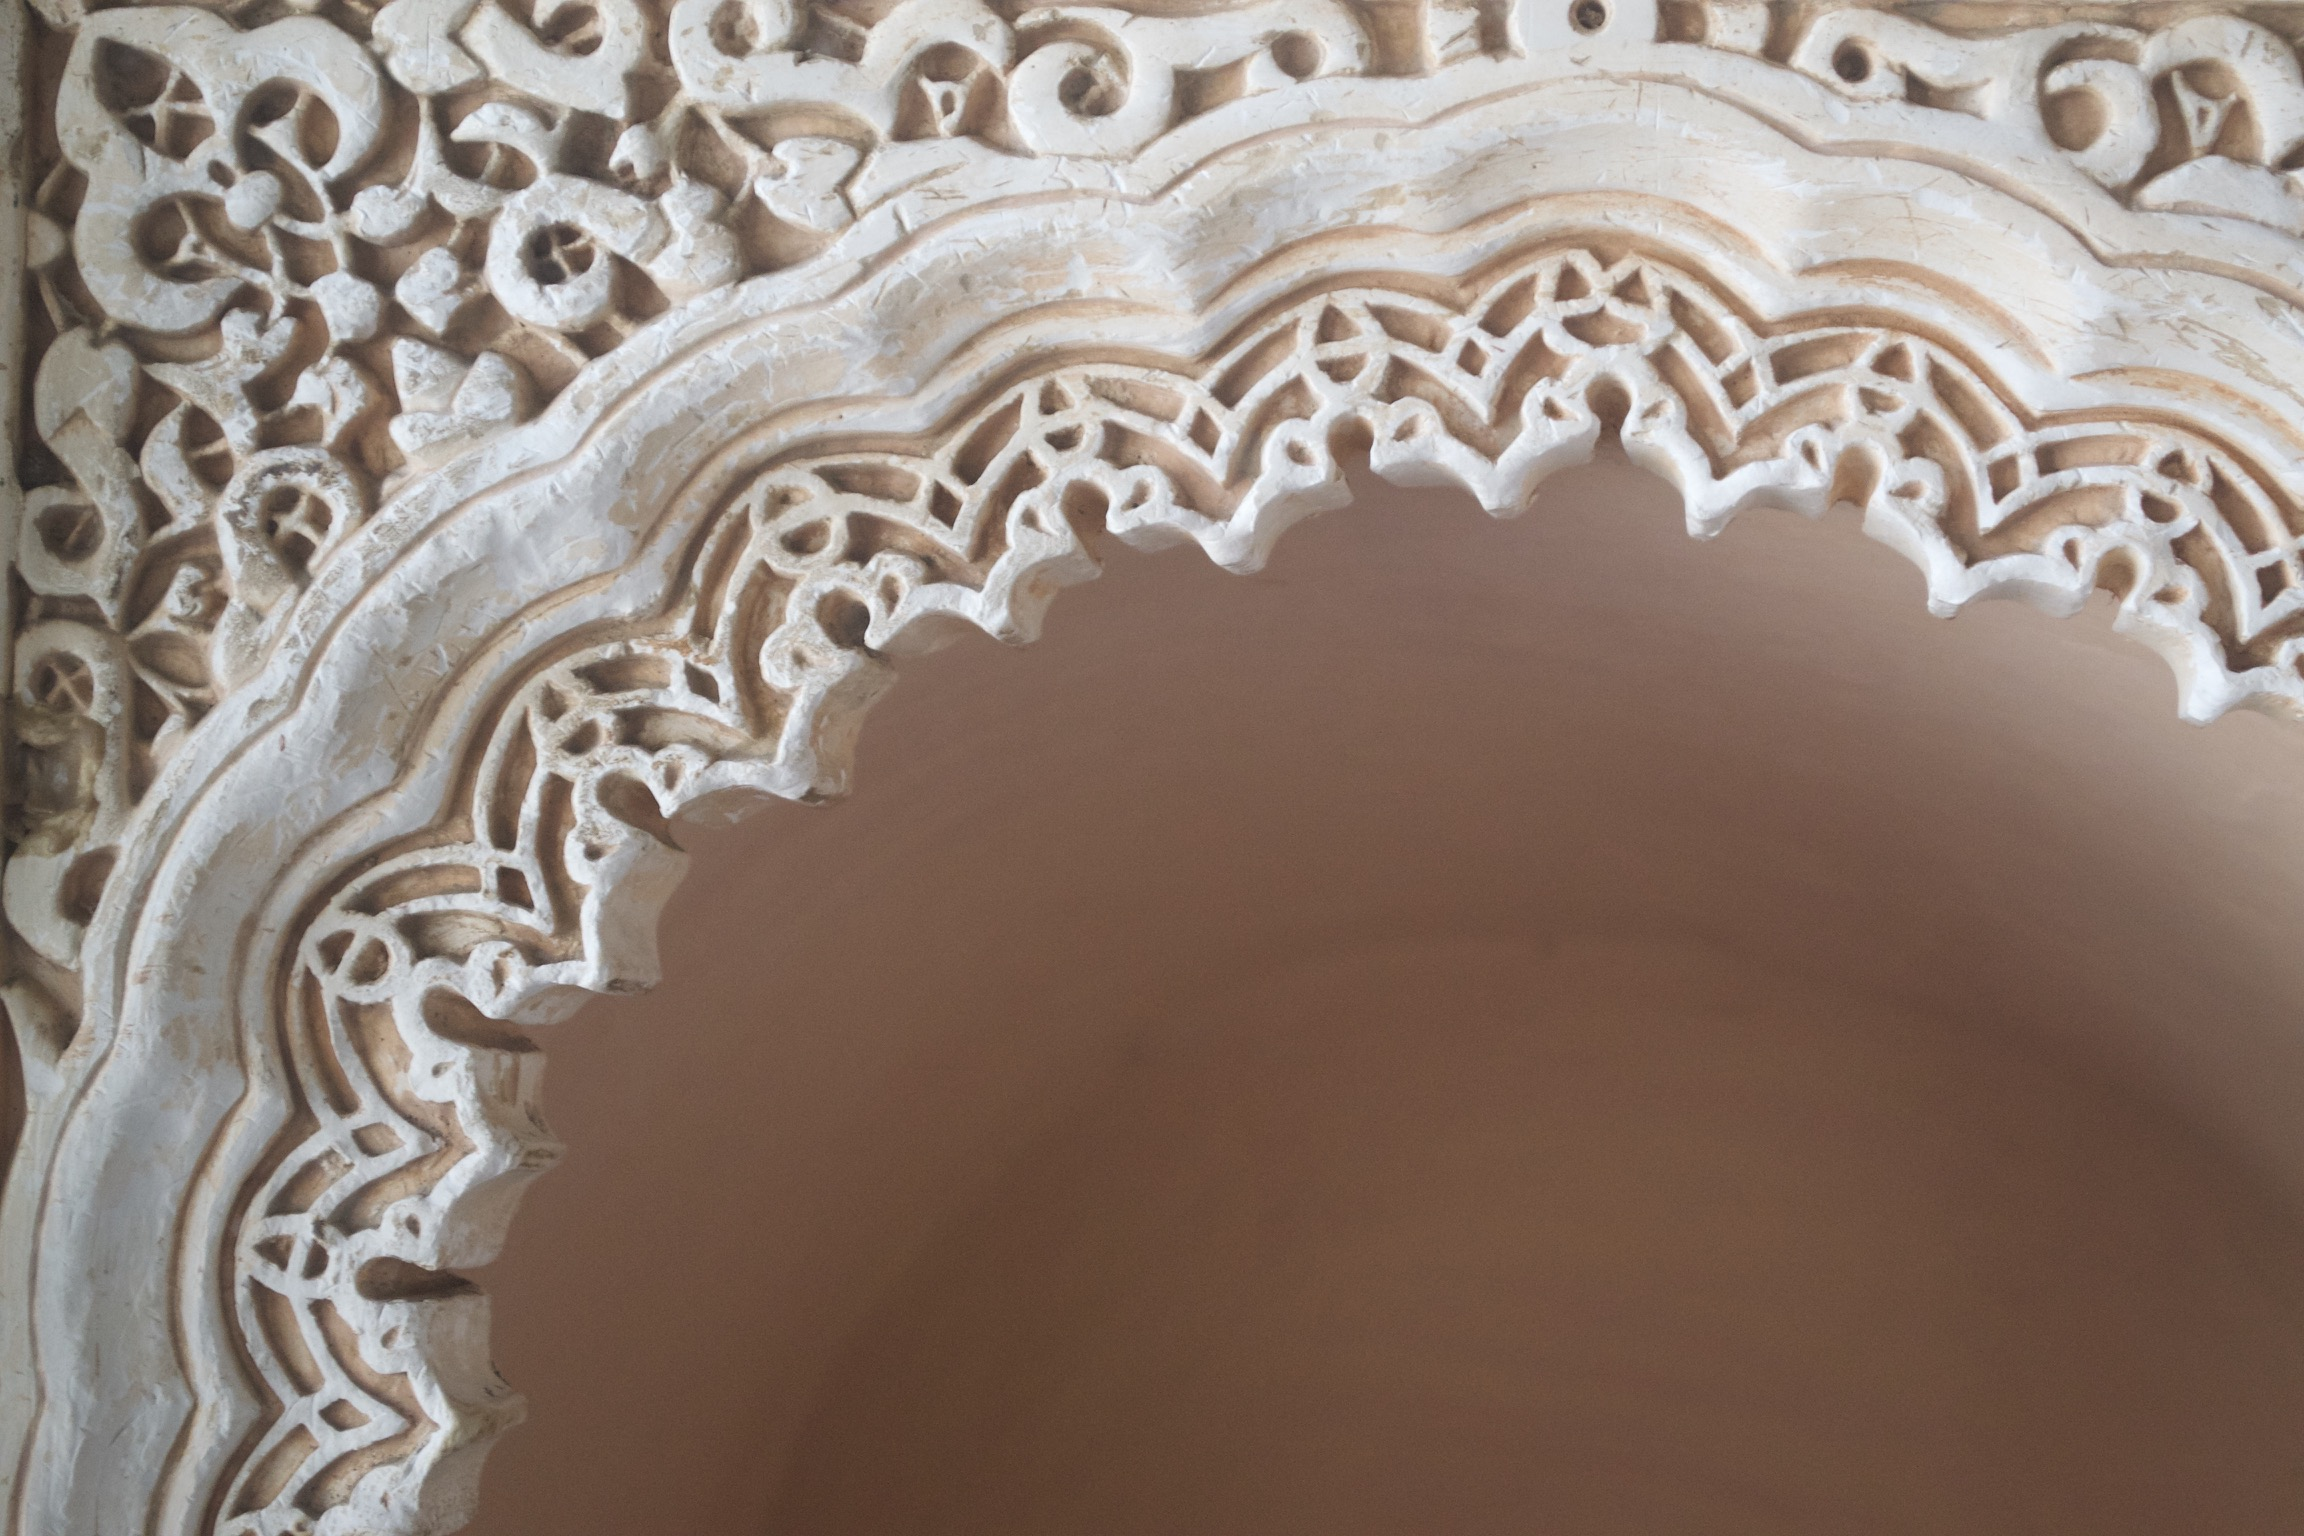 Geometric designs surround a scalloped archway.